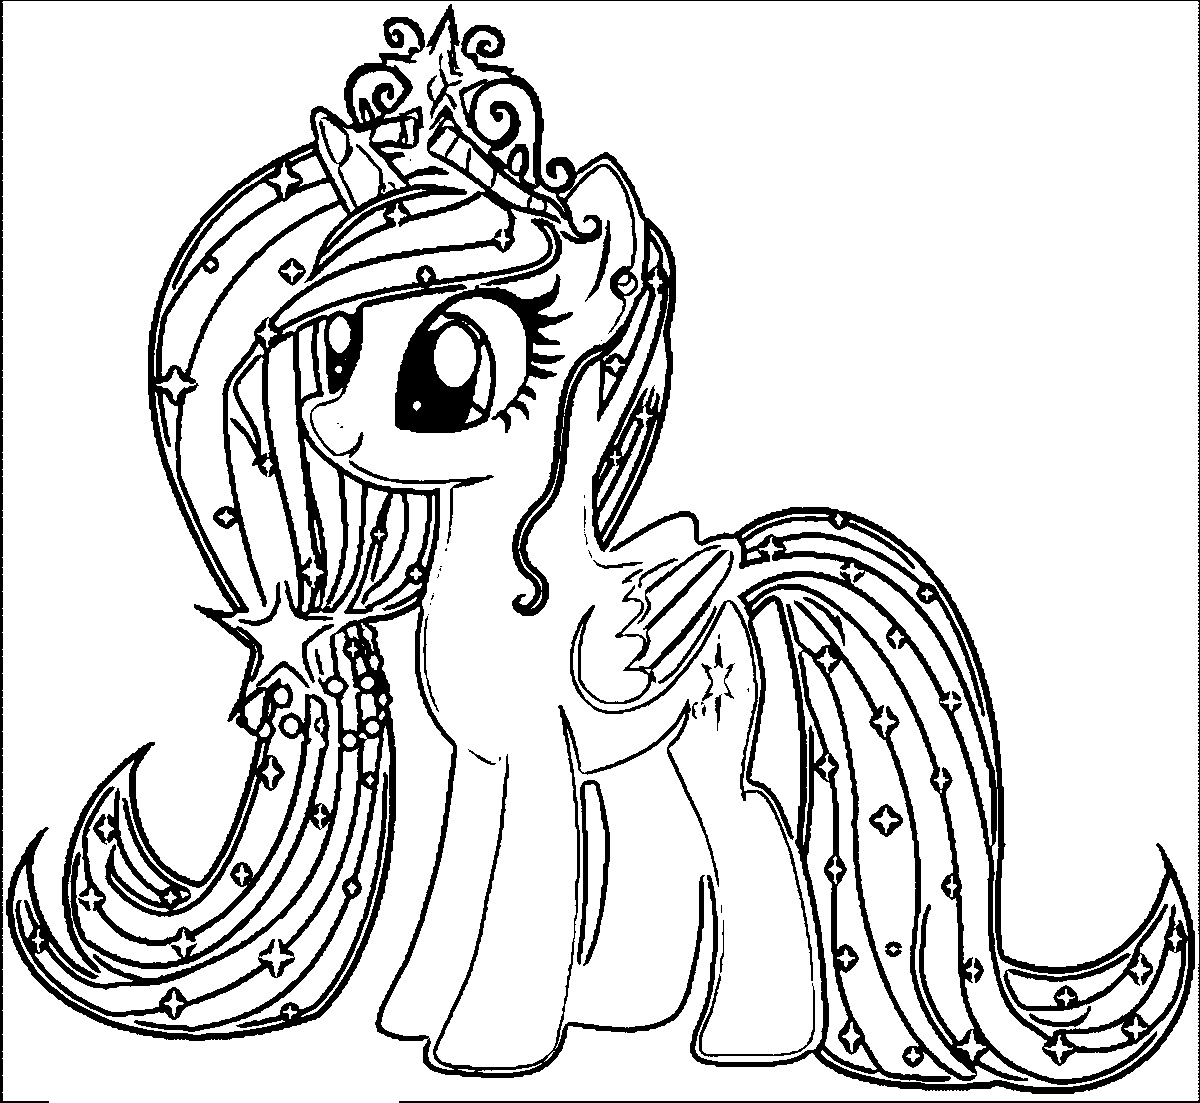 my little pony coloring sheets to print my little pony coloring pages for girls print for free or coloring sheets to little pony my print